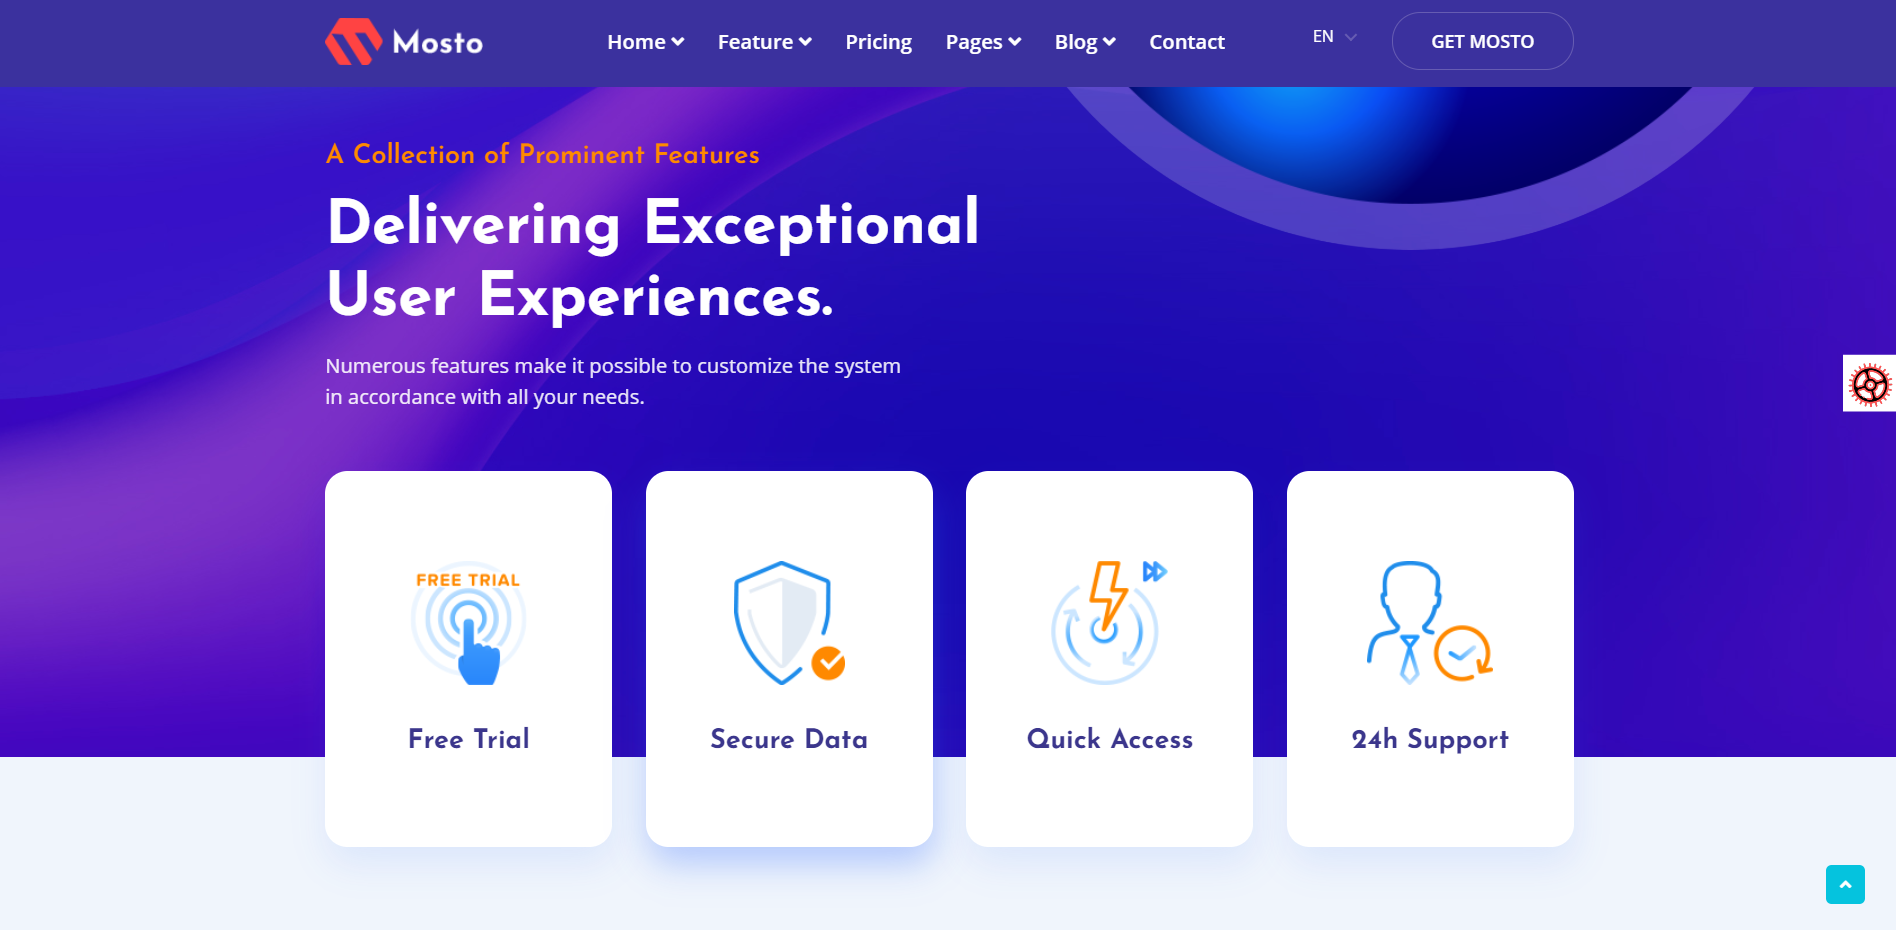 Top Web Design Trends to Look Out For in 2021 Mosto